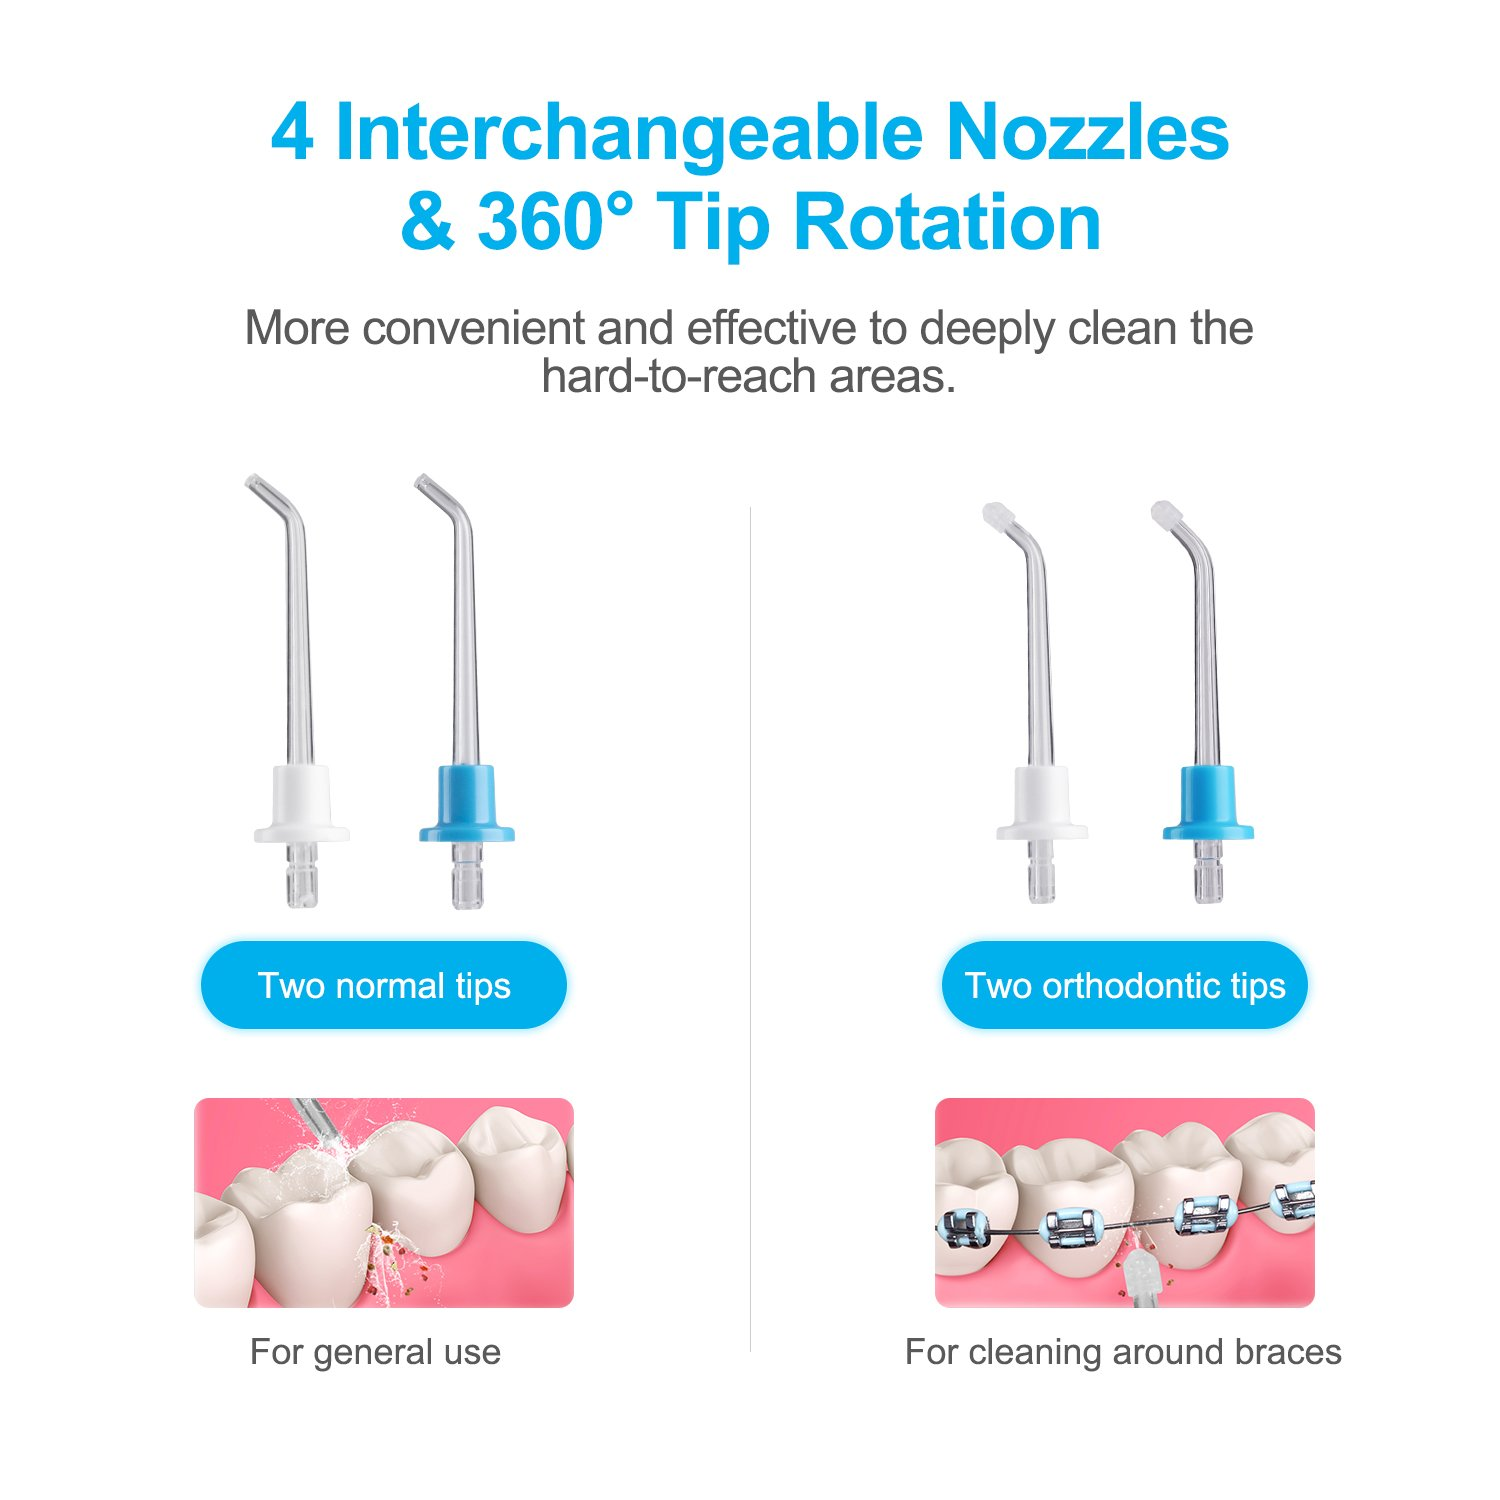 Electric Dental Water Flosser - Cordless Portable Oral Irrigator Rechargable with 3 Operation Modes and 4 Rotatable Jet Tips for Braces and Teeth Whitening by Fiery Youth (Image #4)